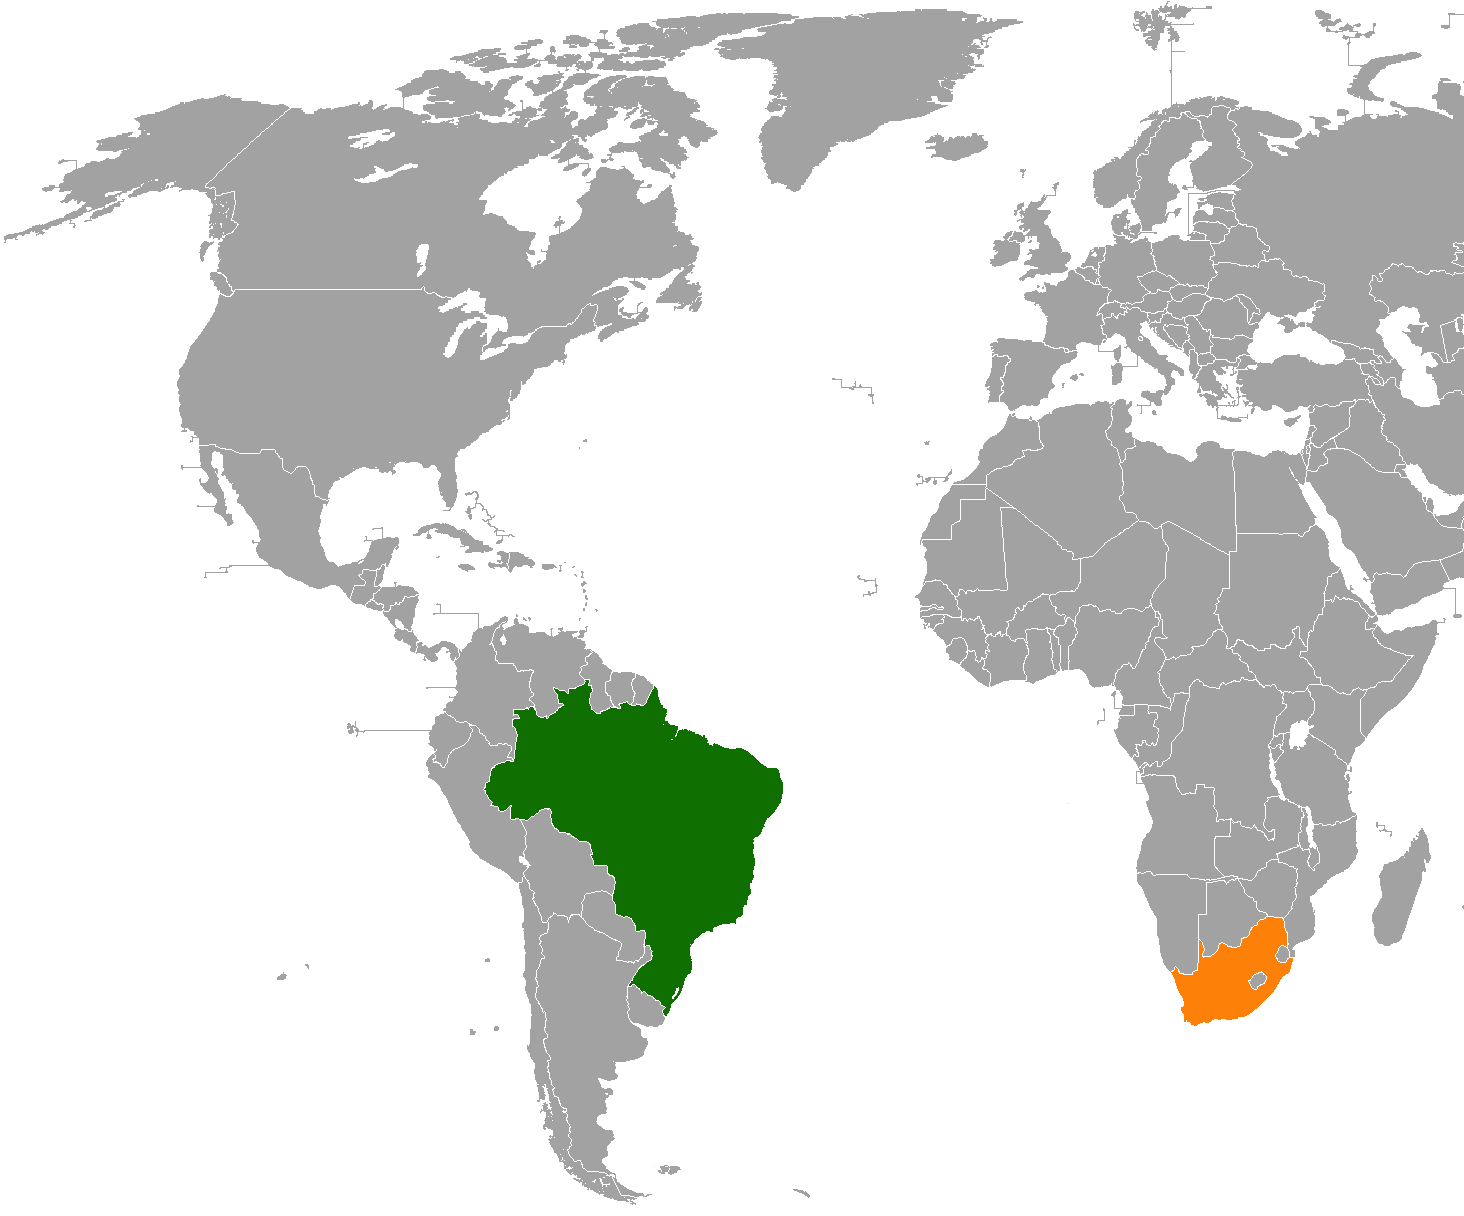 south africa and brazil relationship with the united